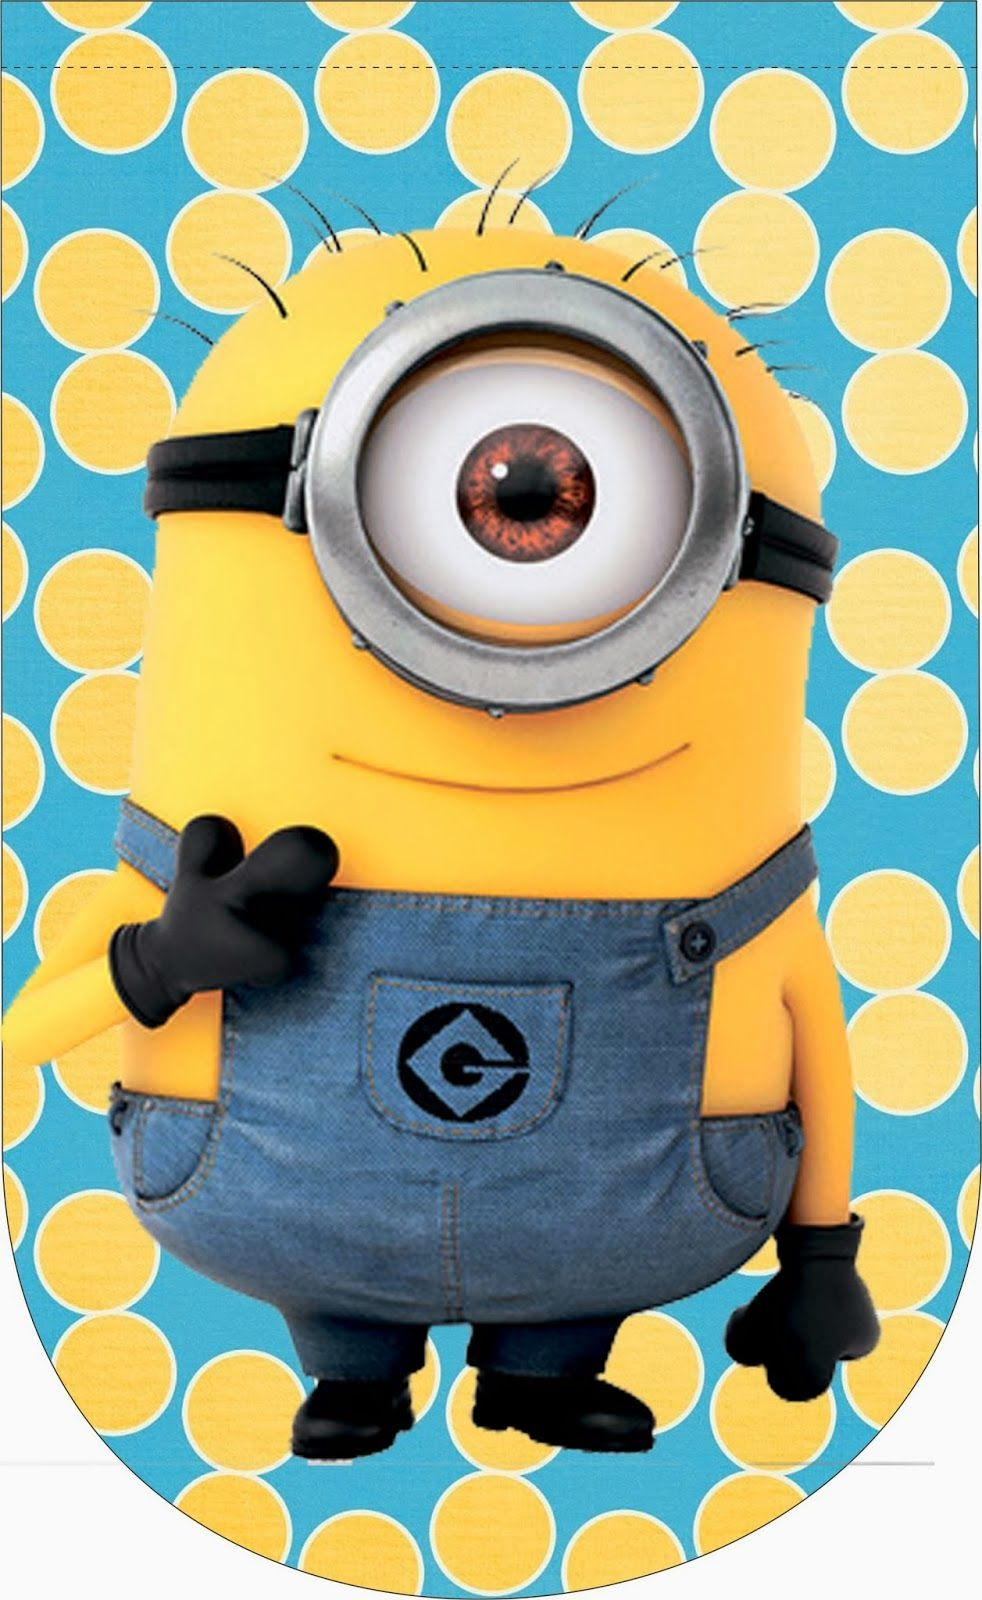 Despicable me 2 free party printables and images minions despicable me 2 free party printables and images stopboris Images